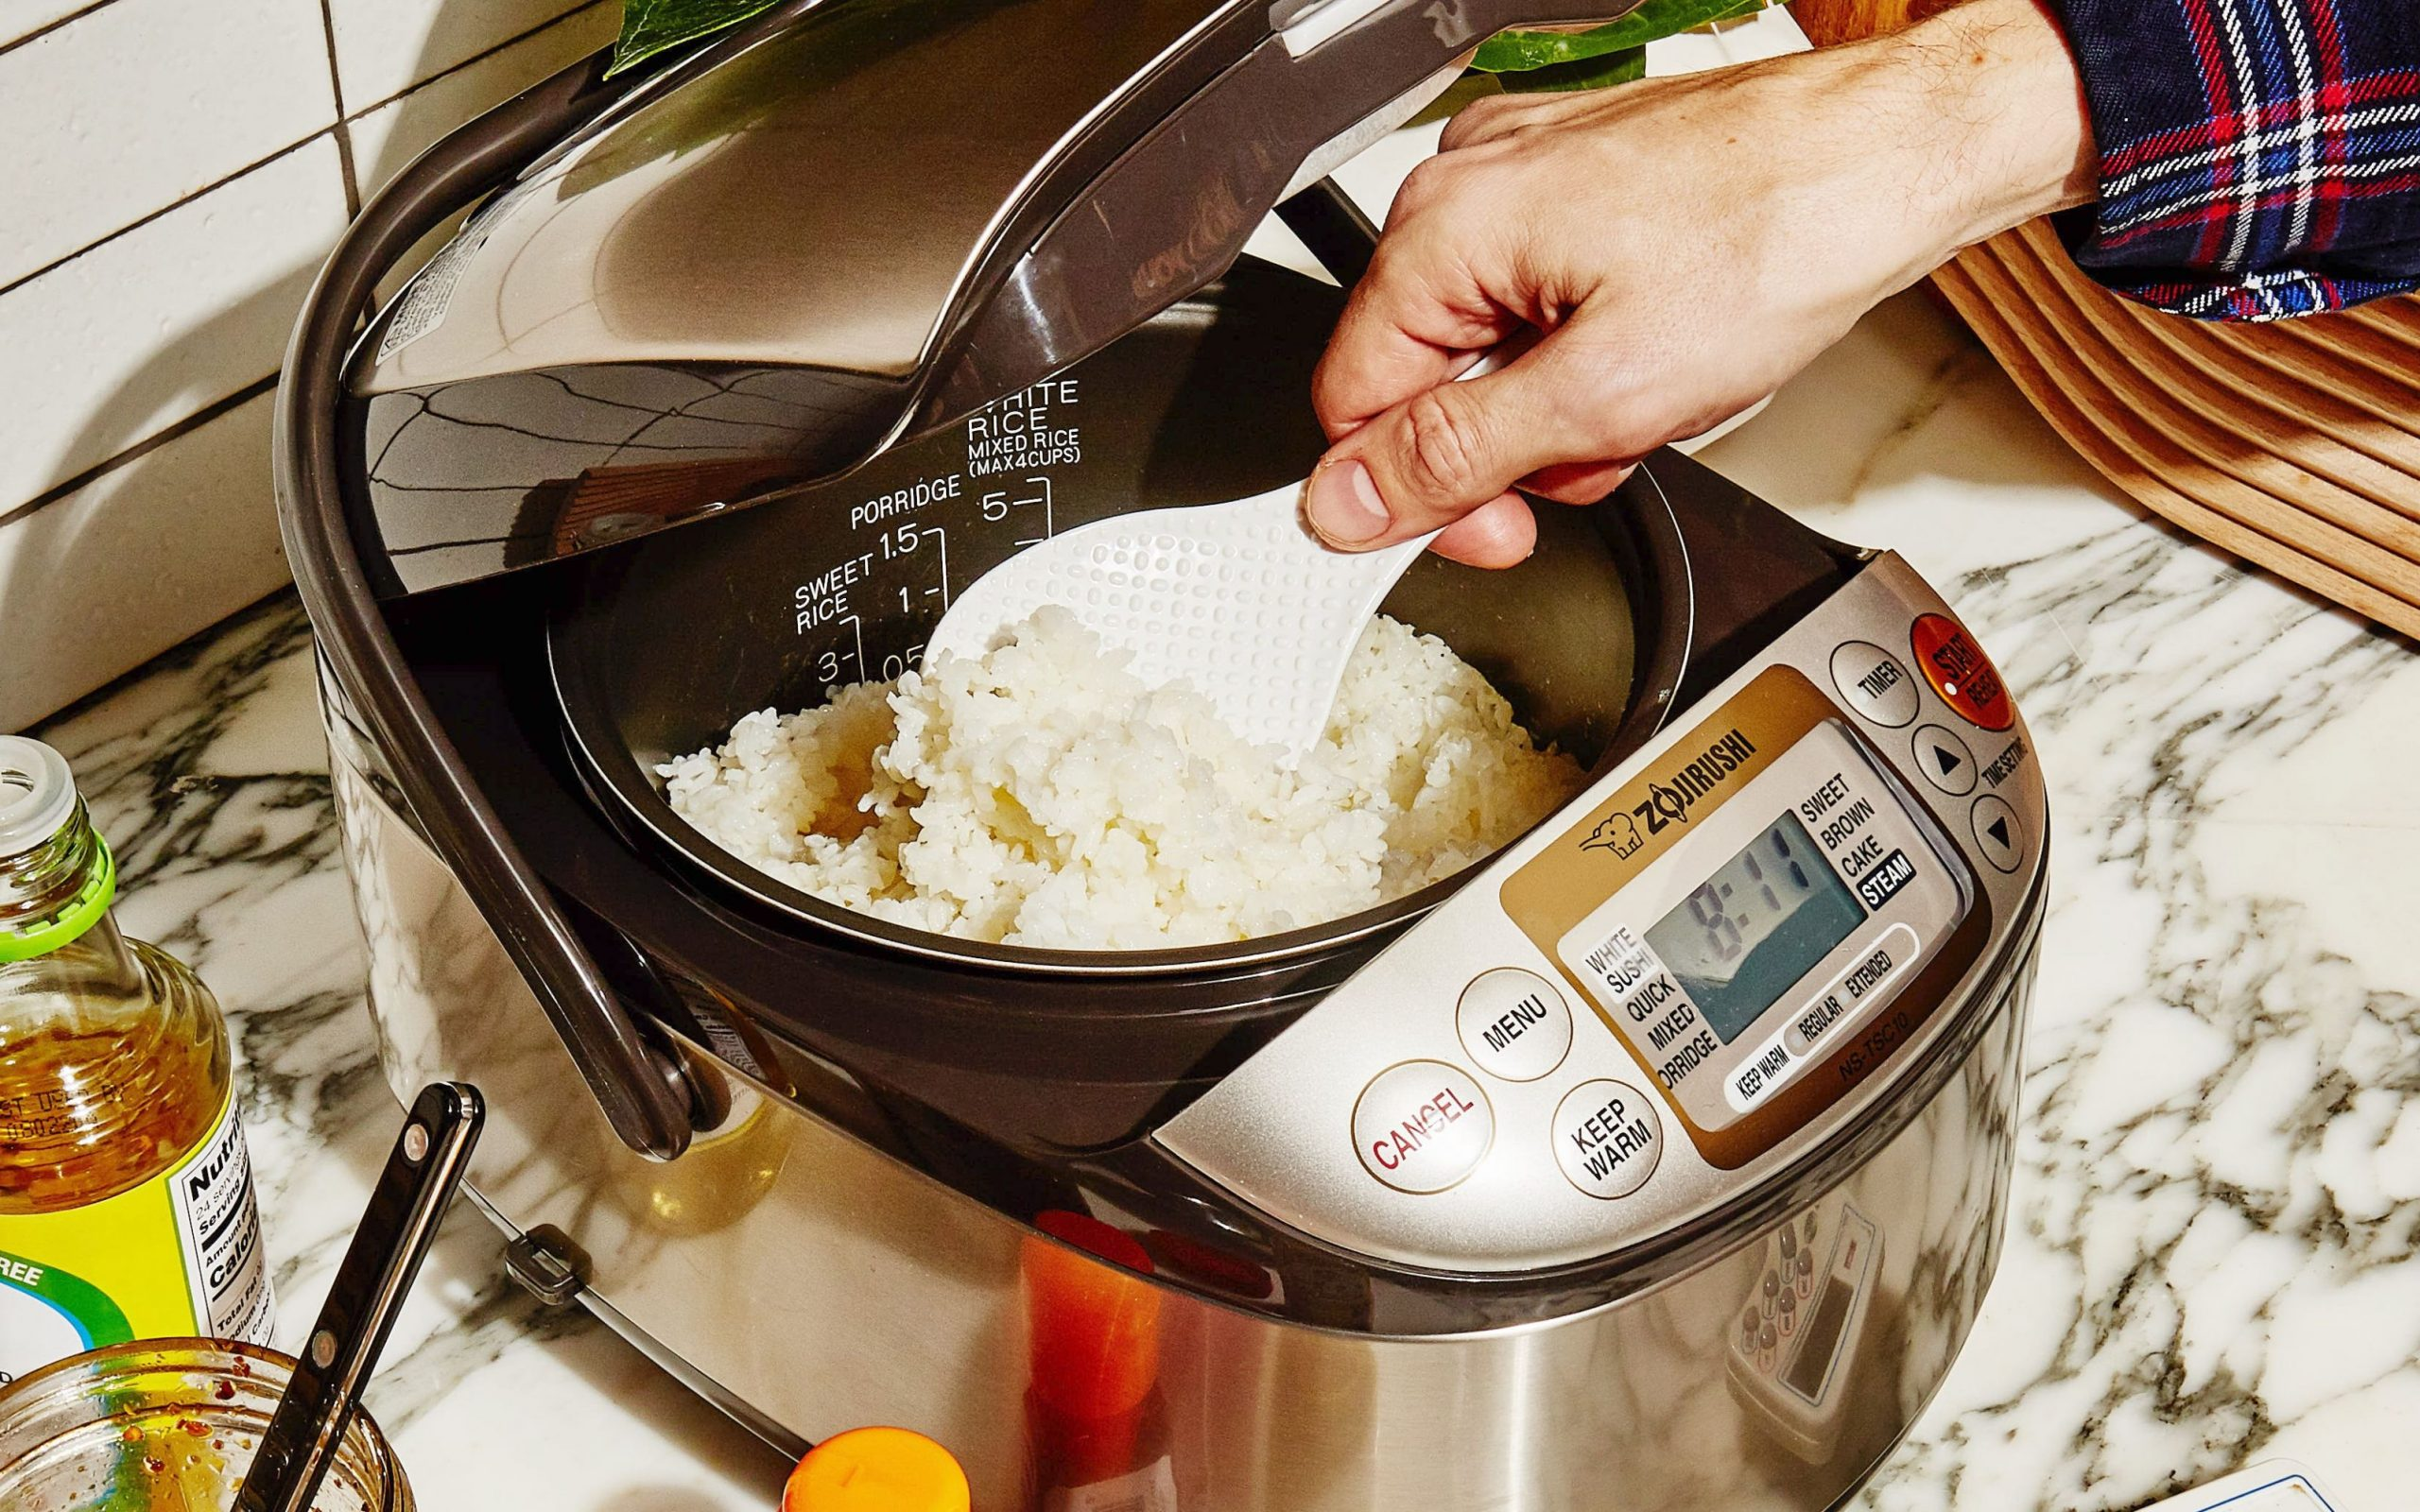 Why the Zojirushi Rice Cooker Is the Unofficial Appliance of the ...